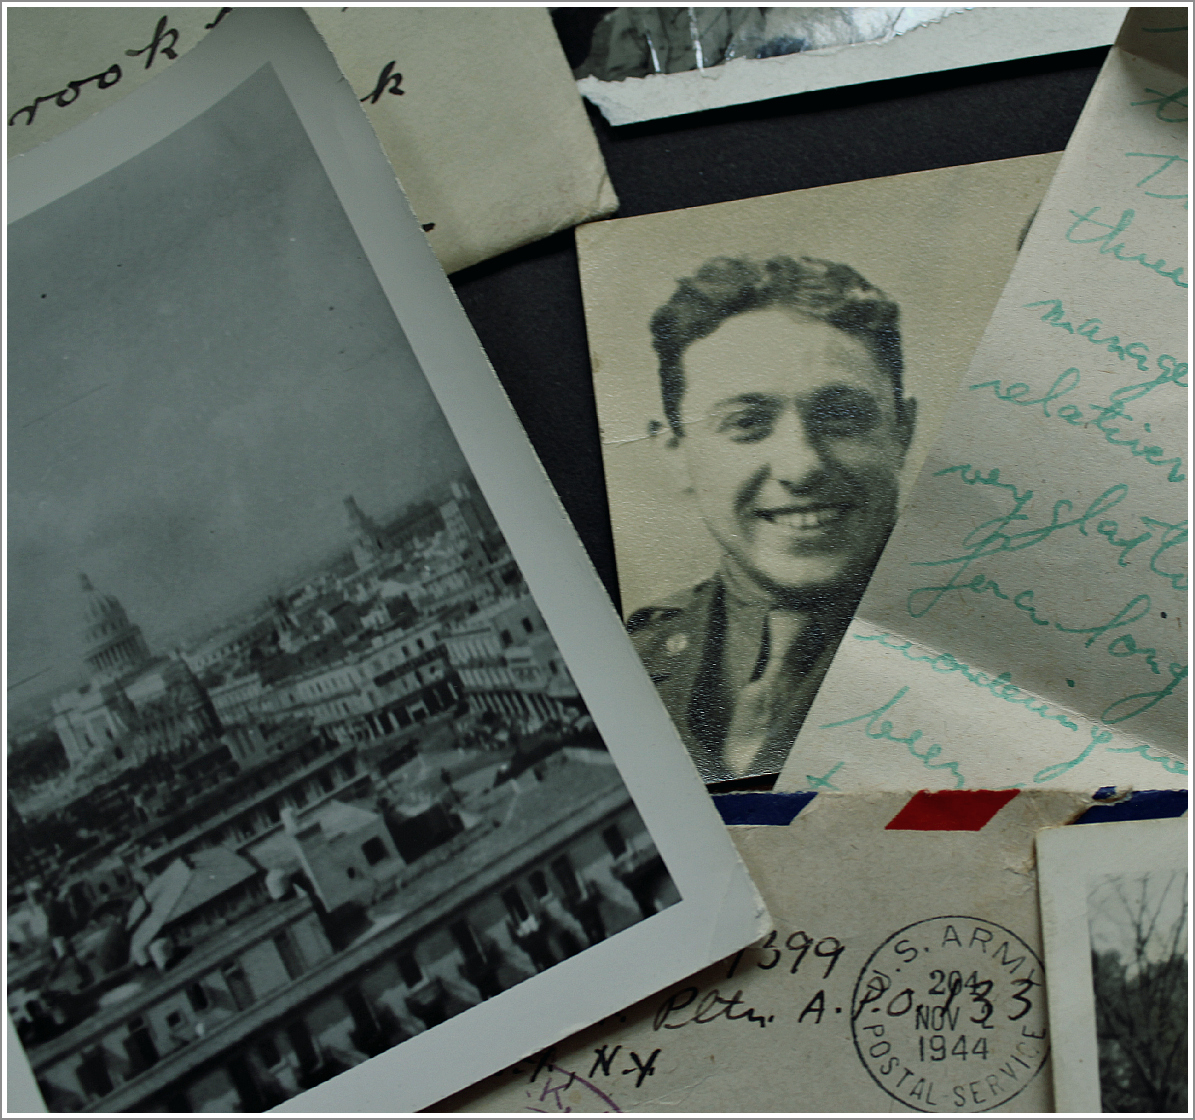 Collage, Abe Testa Photos and Letters, by Dena T Bray©